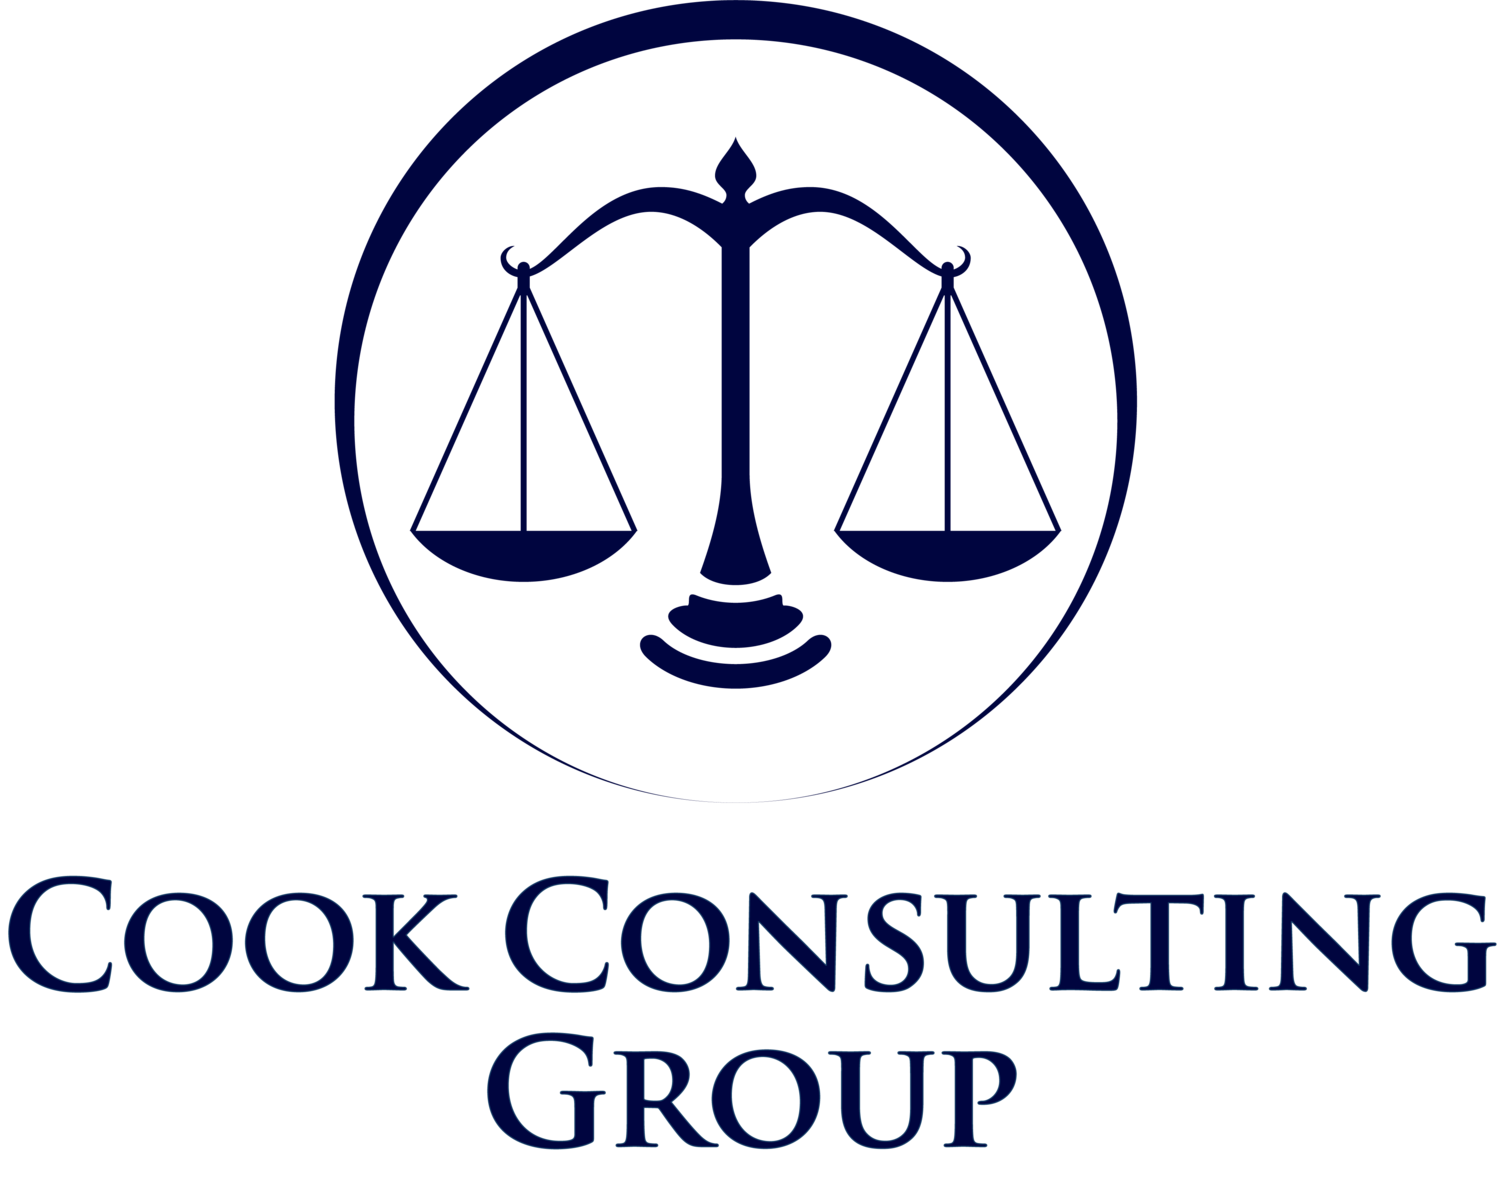 Cook Consulting Group